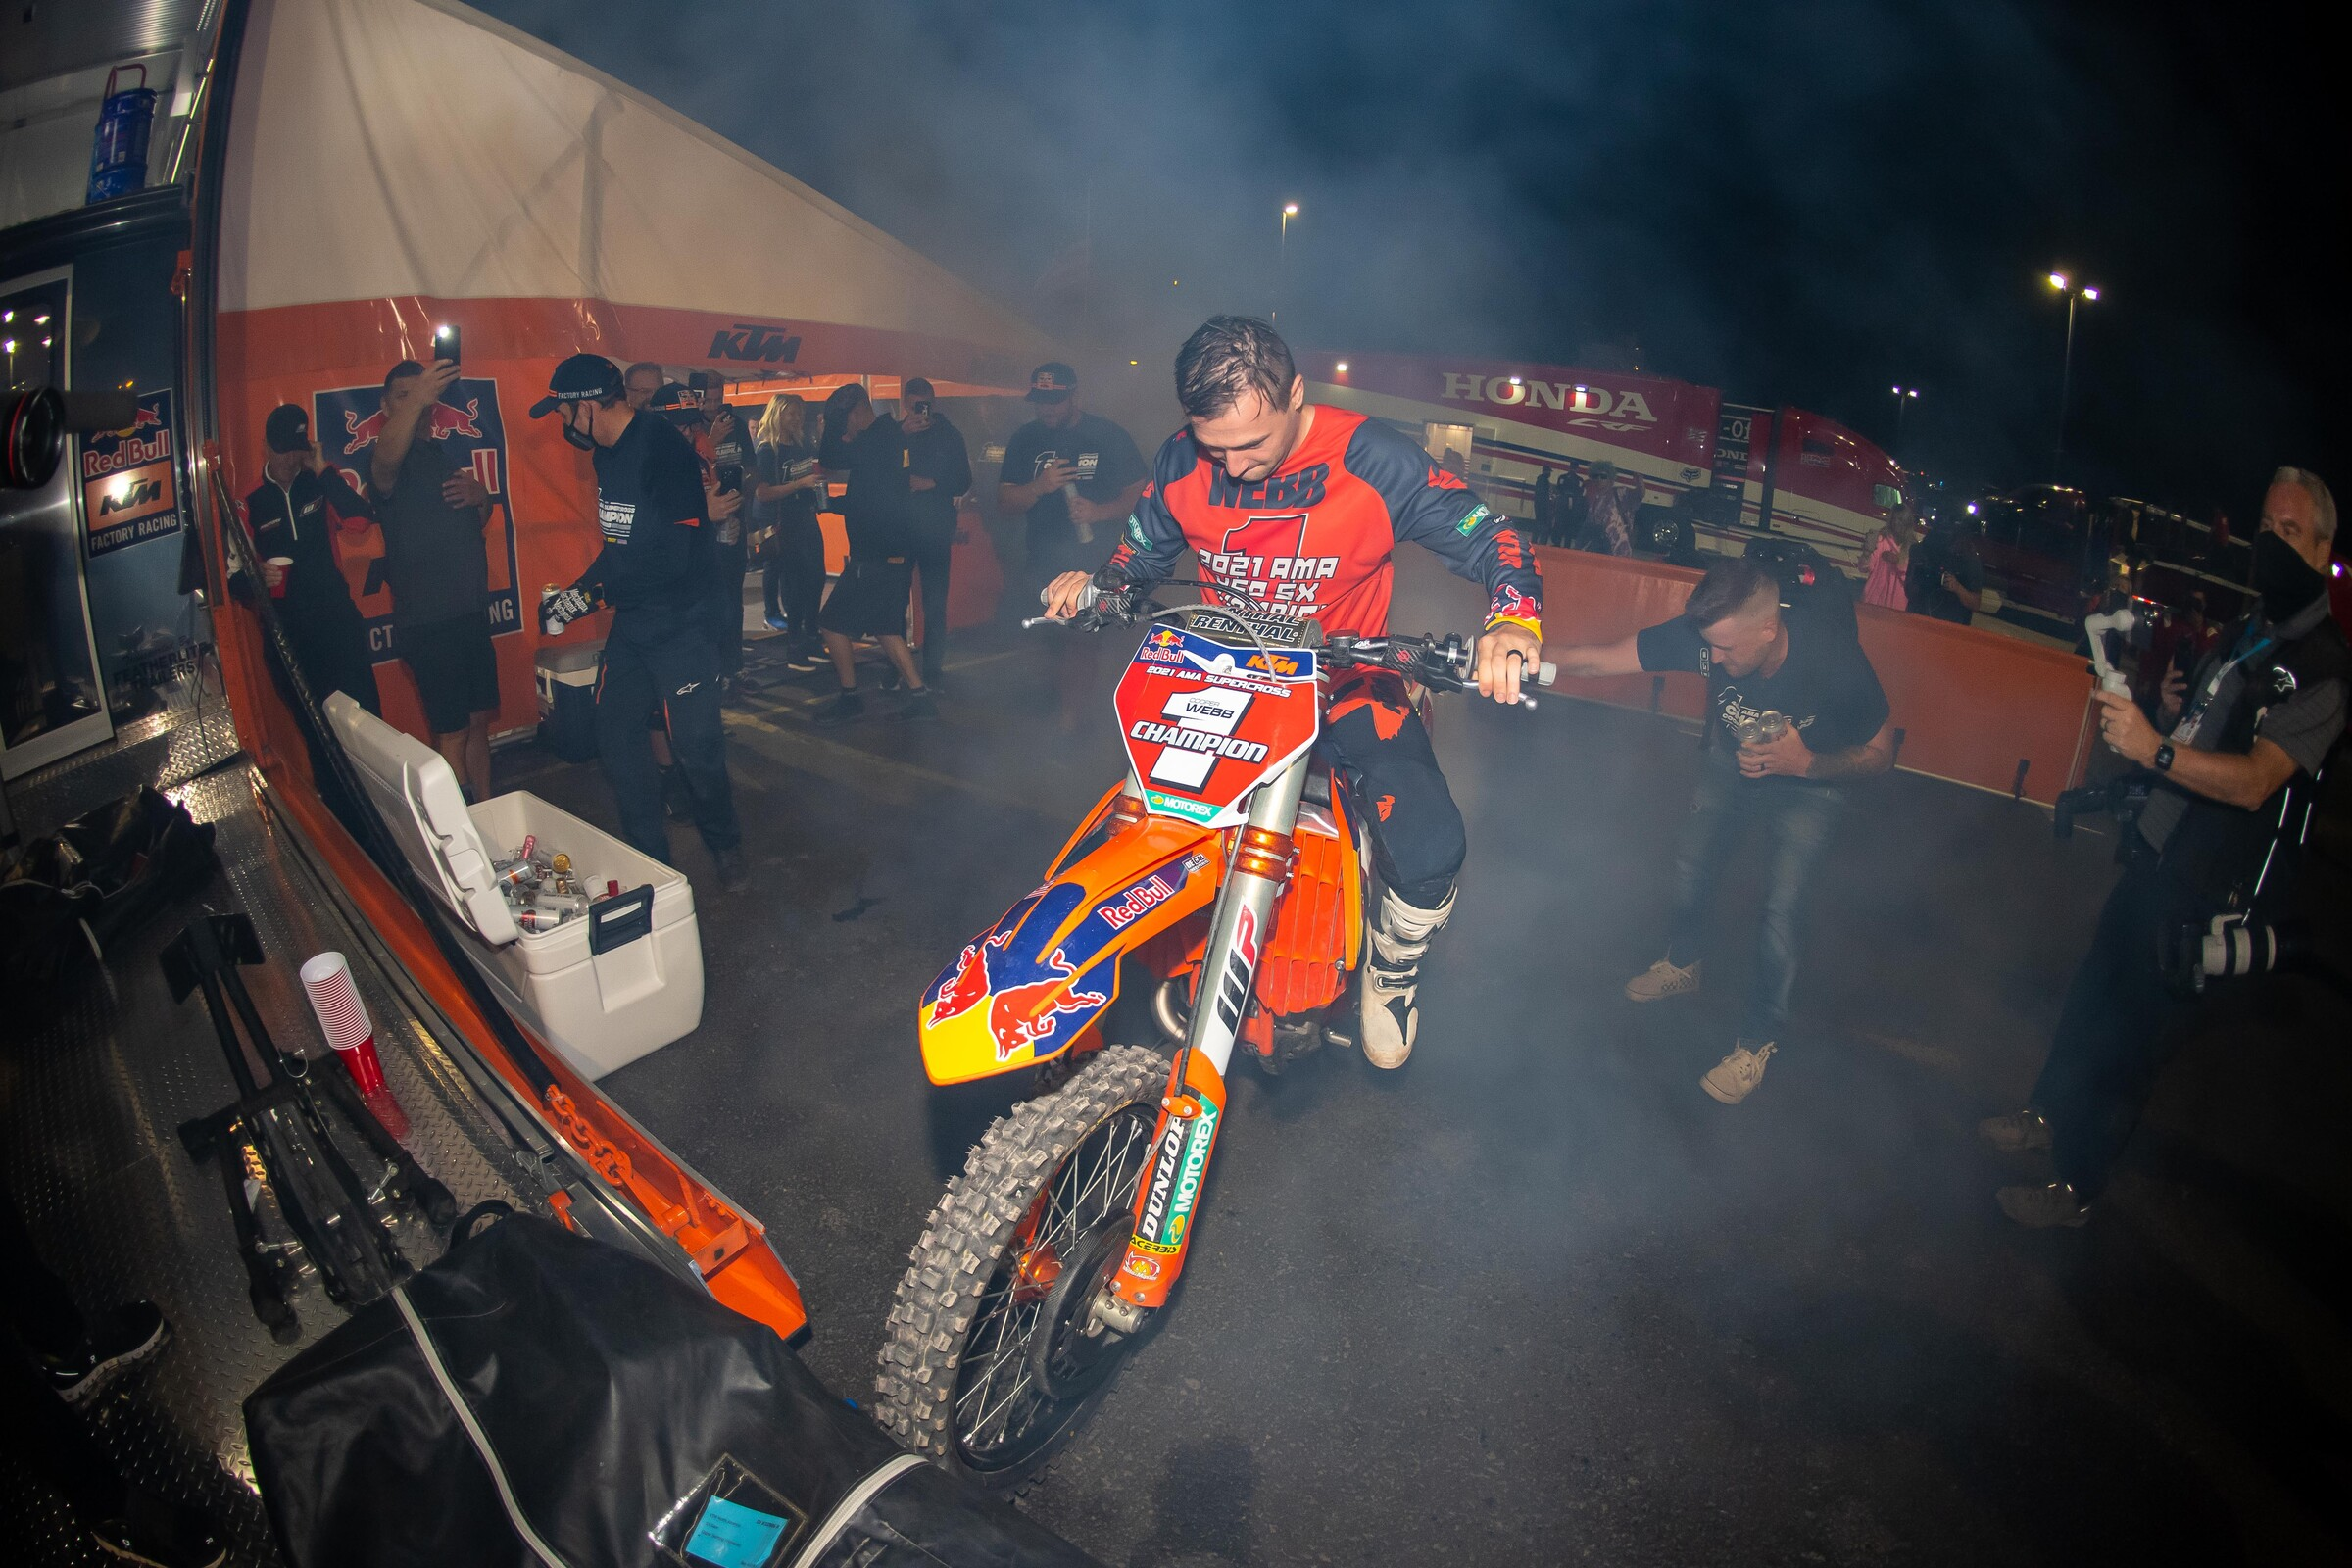 Webb performing 450SX champion burnout #2 in the pits on Saturday night.